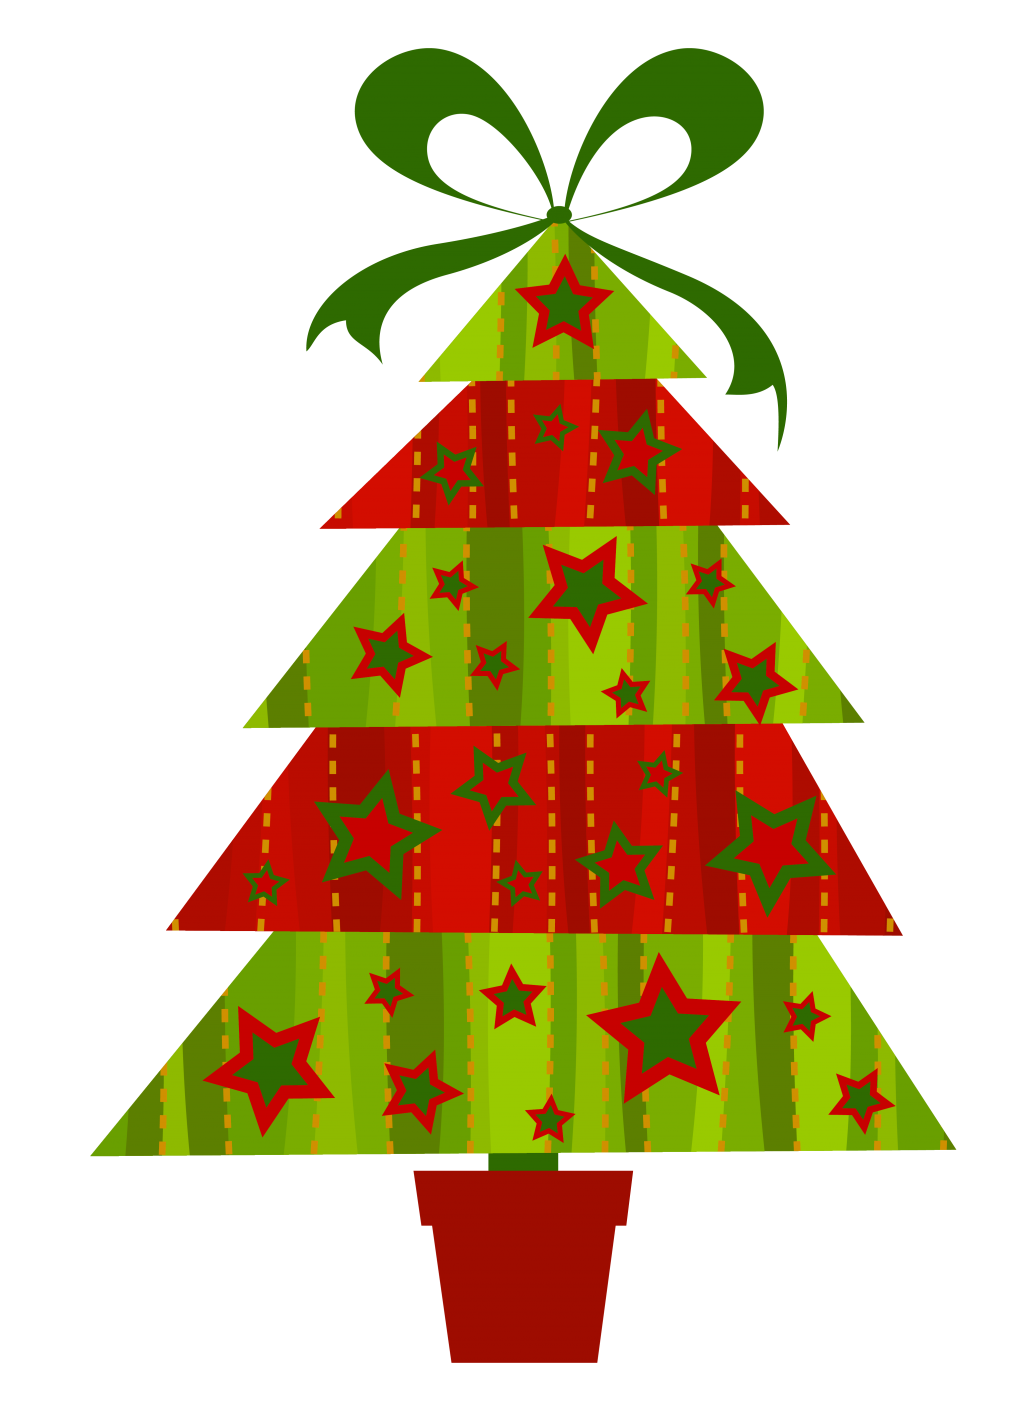 Swirl christmas tree clipart svg library stock Christmas Clipart Victorian | Free download best Christmas Clipart ... svg library stock